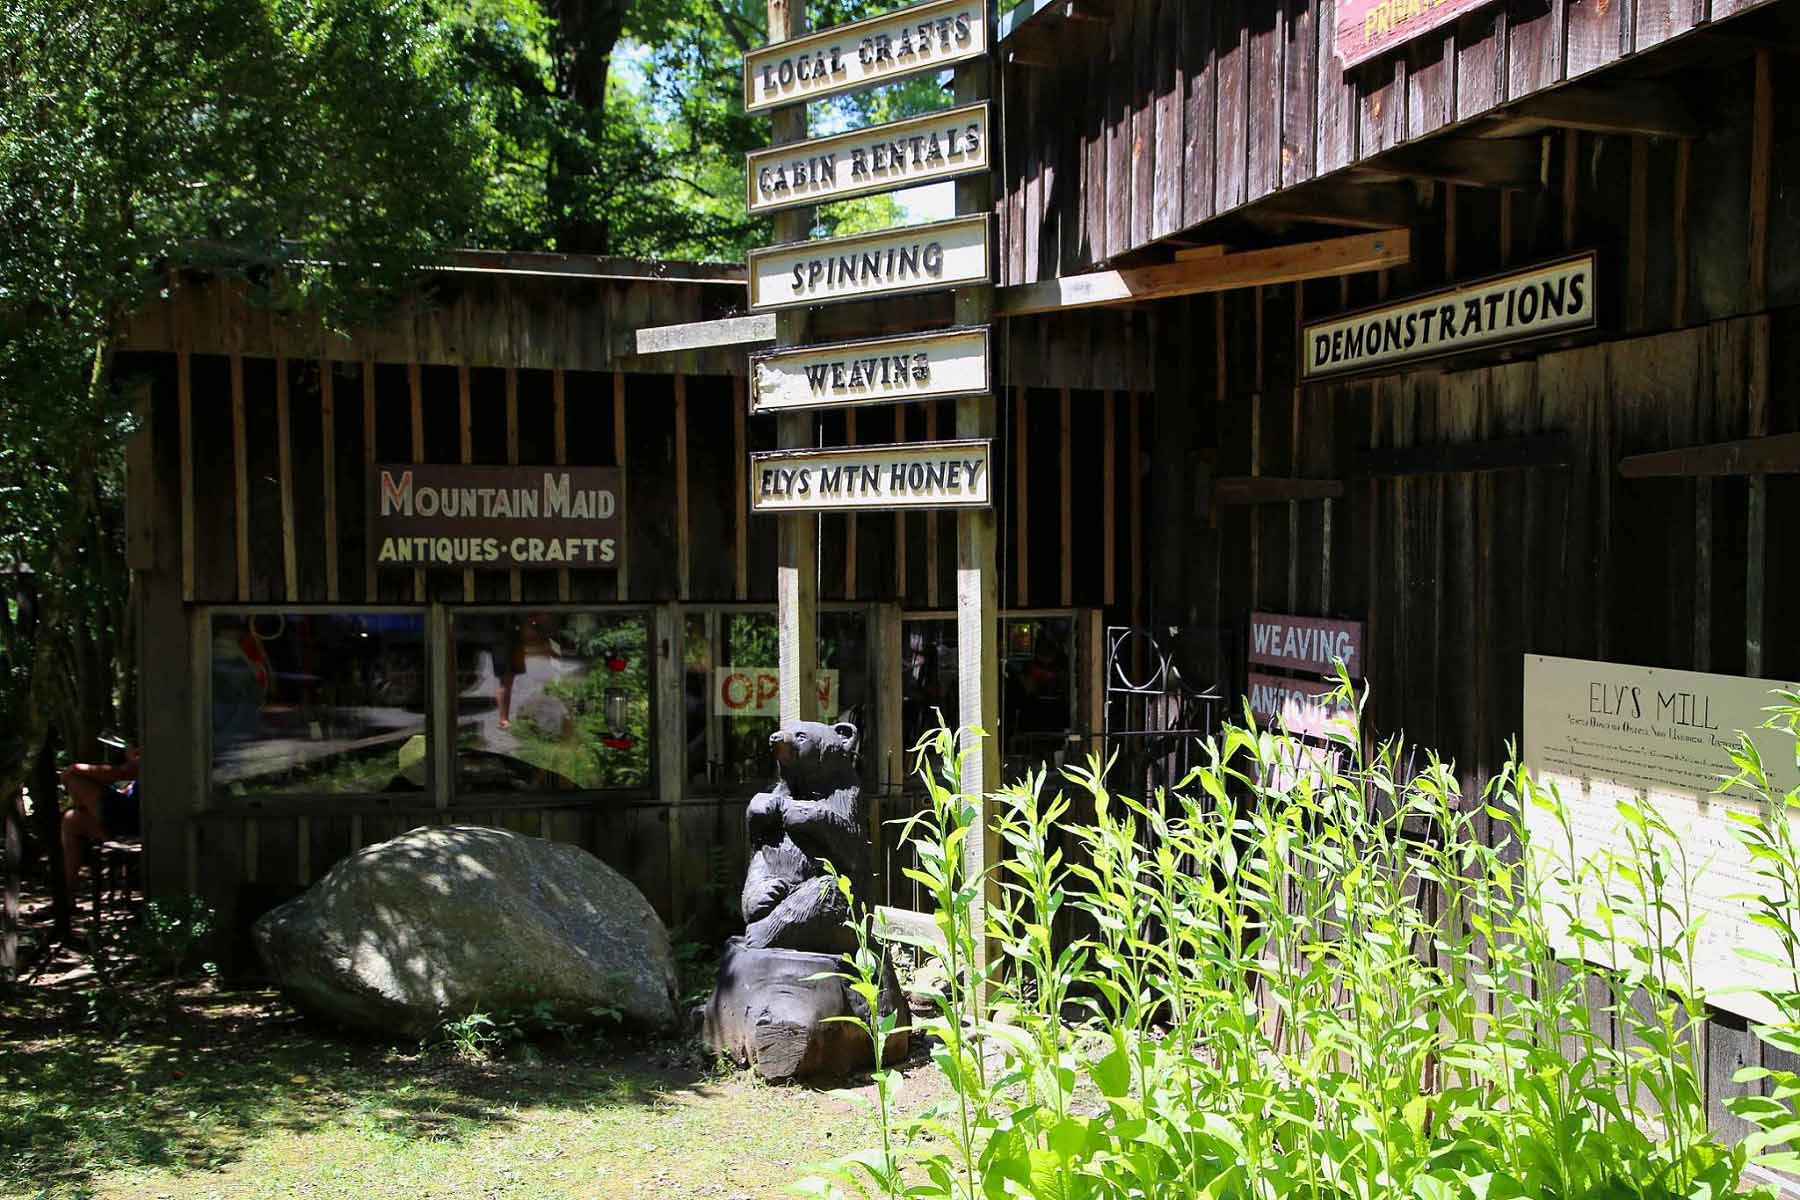 Exterior of store at Ely's Mill